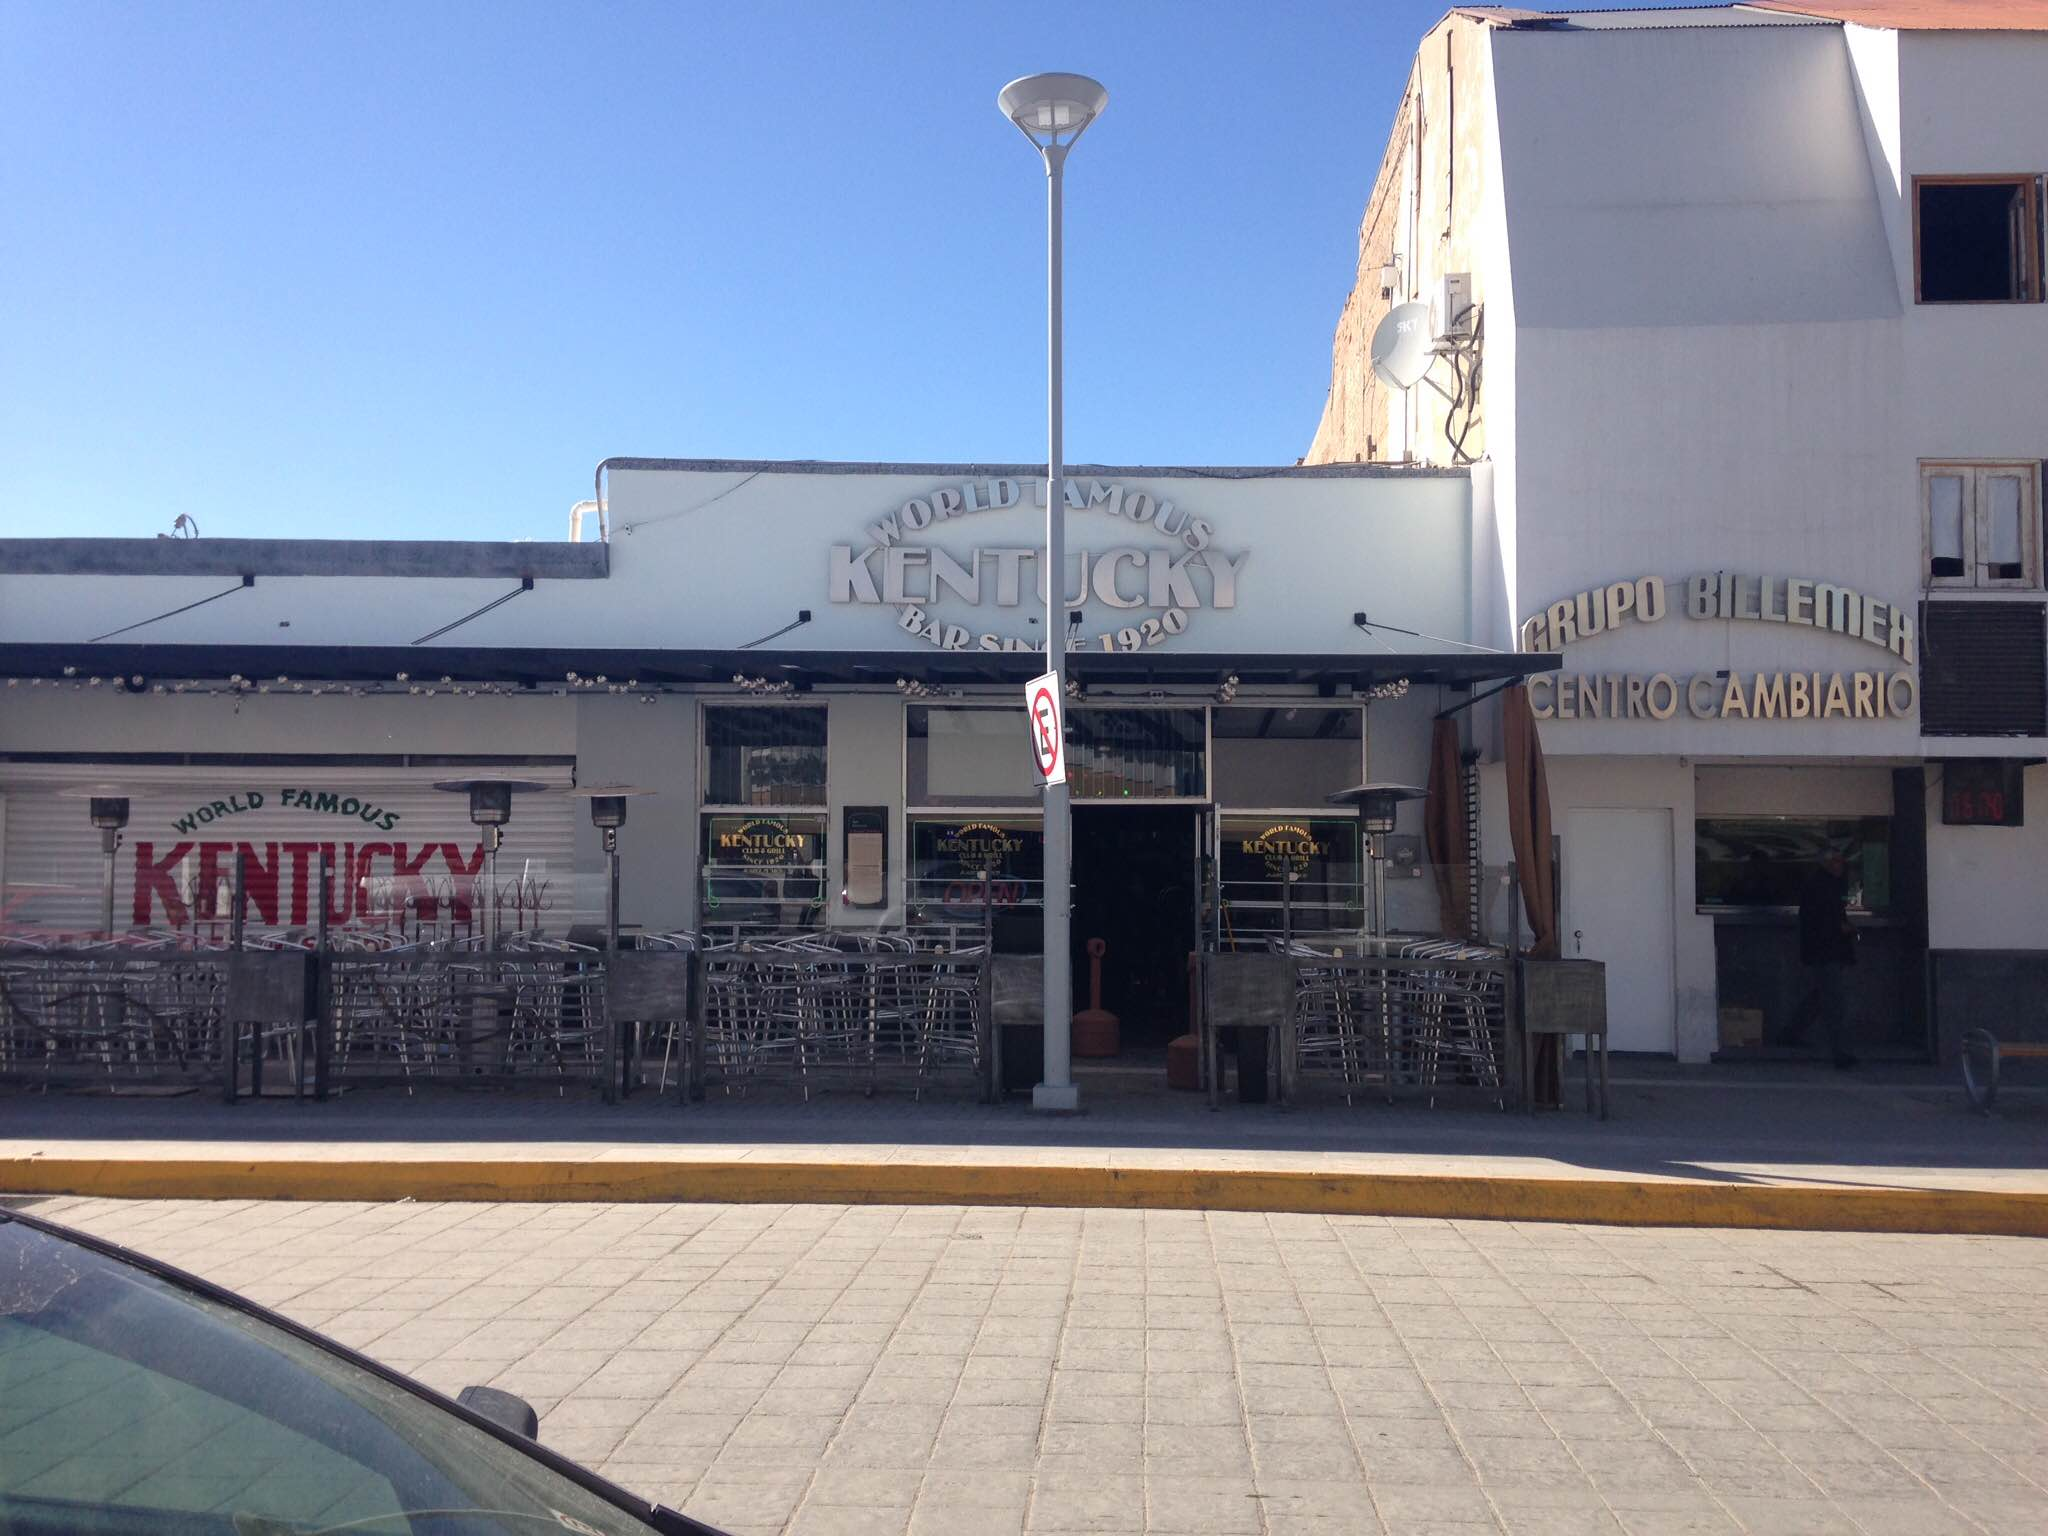 The World Famous Kentucky Club, Juarez, Mexico